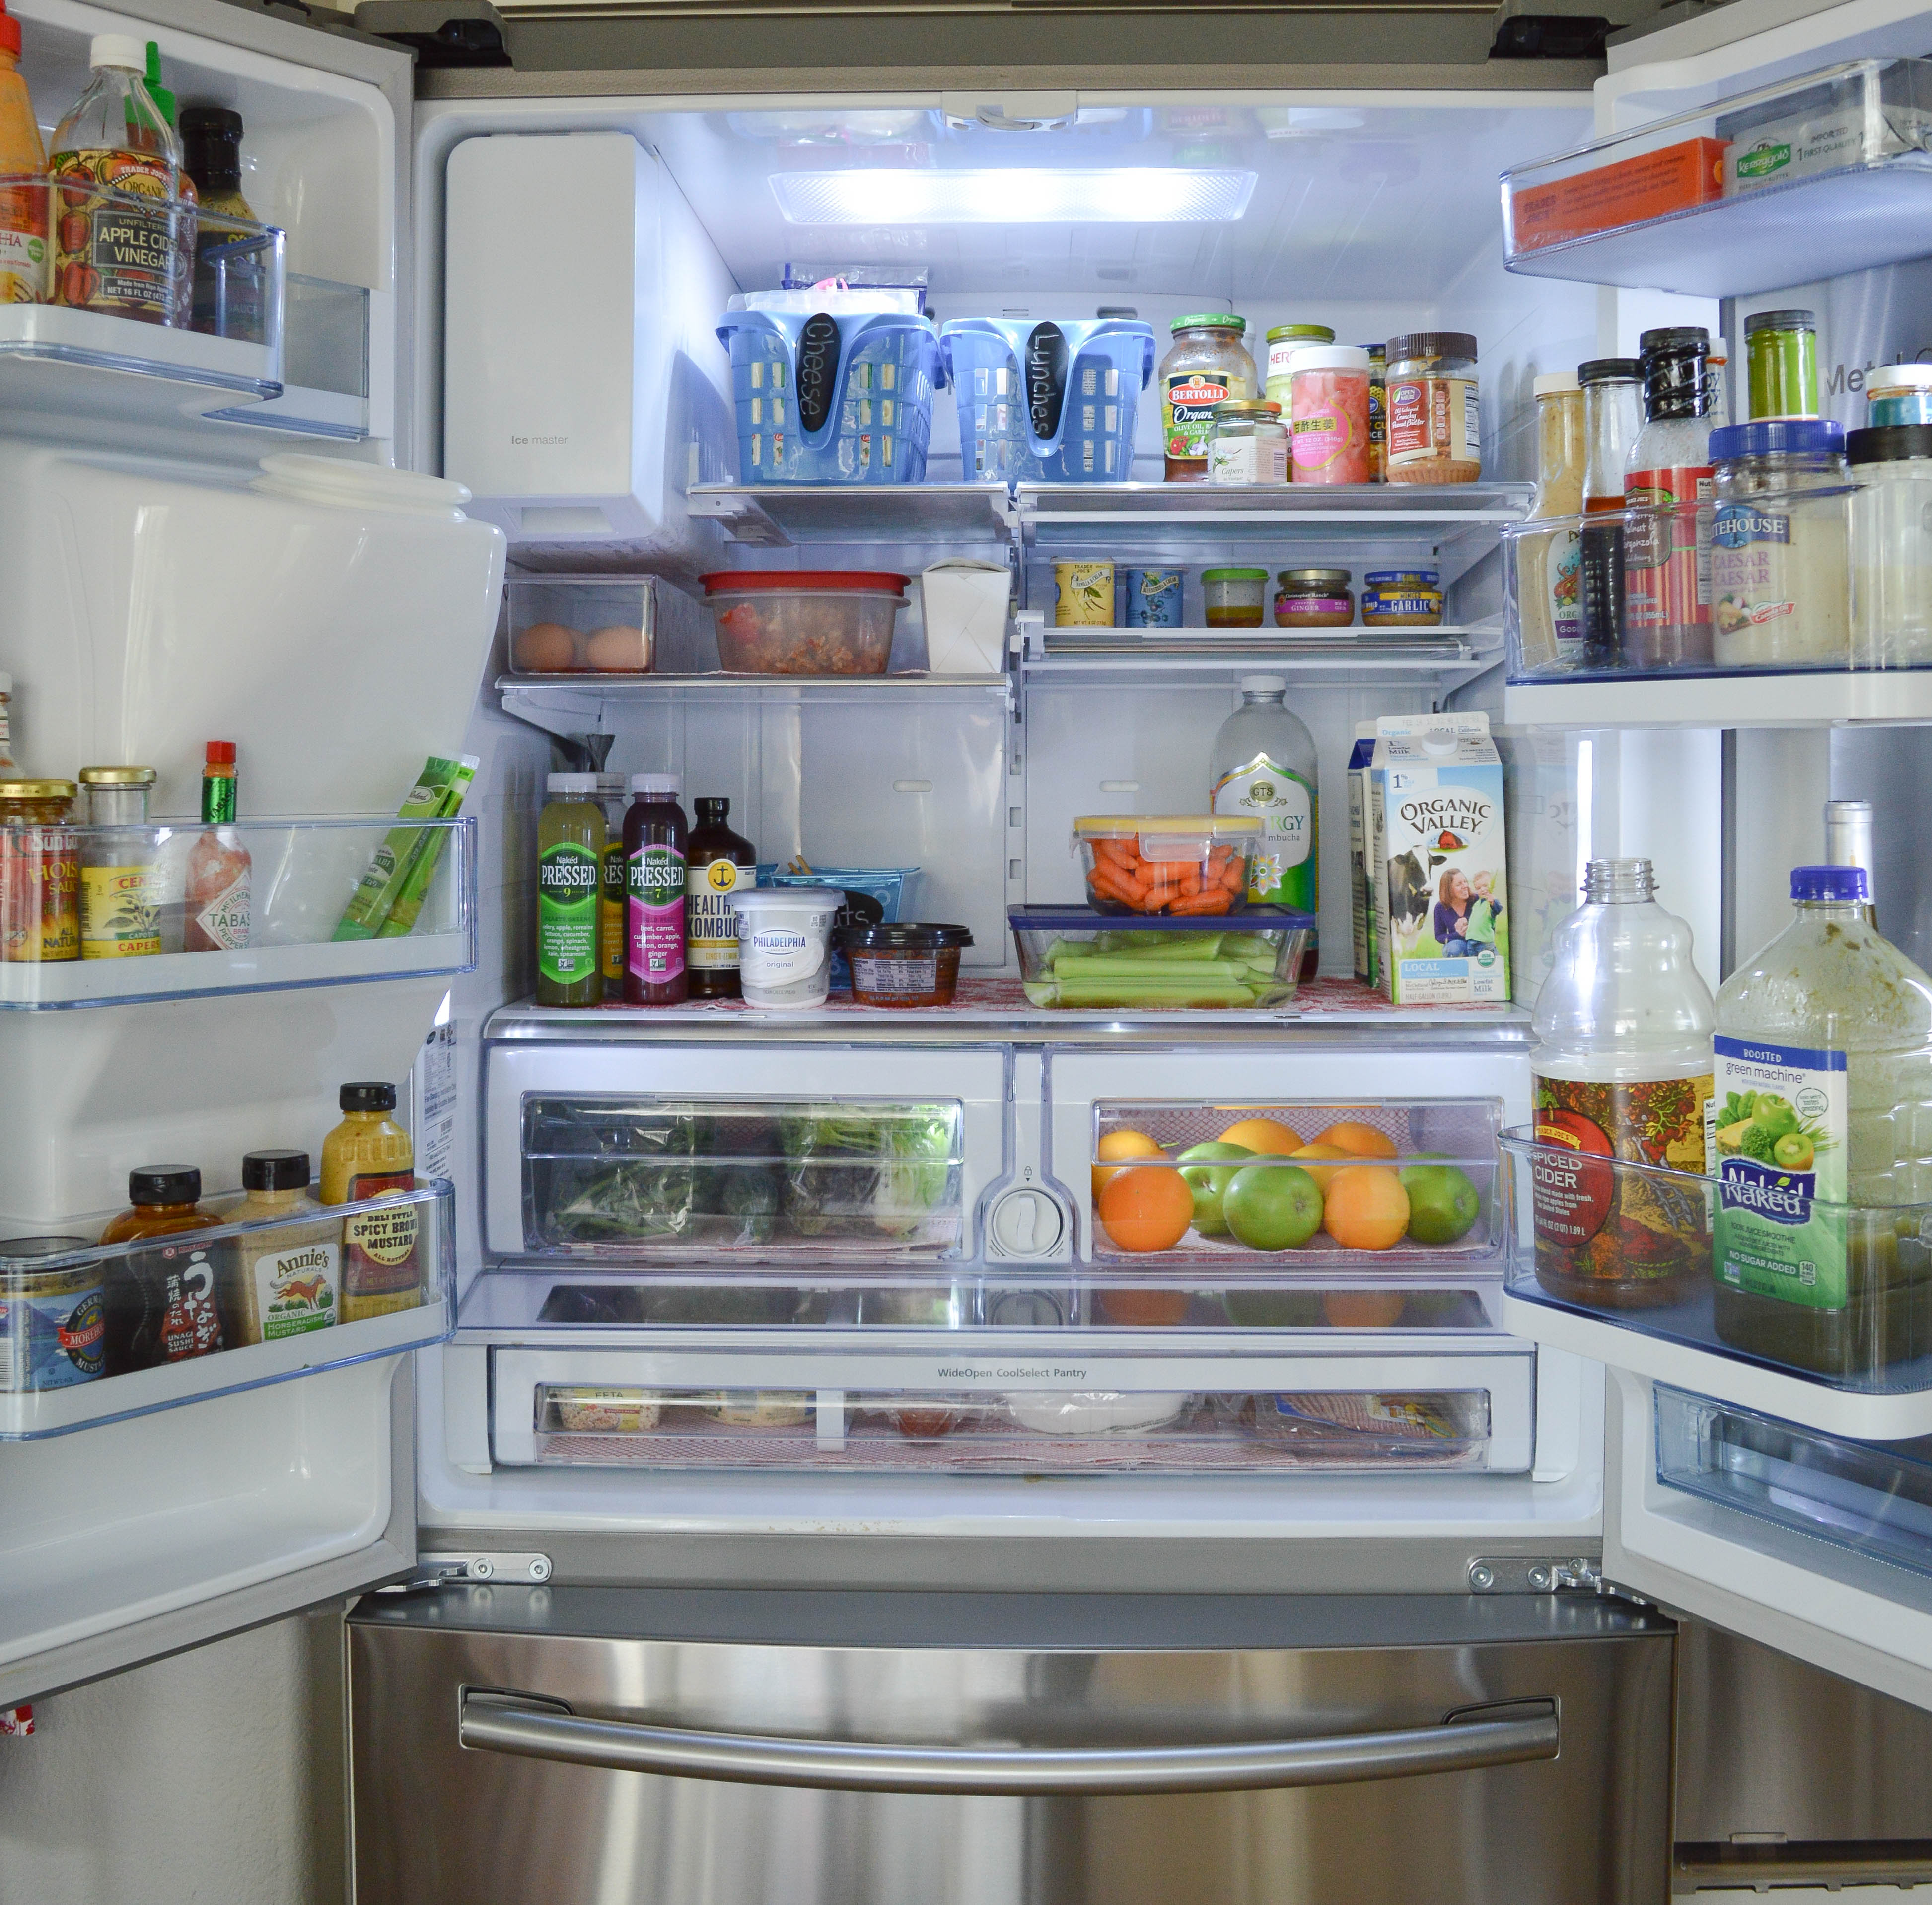 Tips for an organized refrigerator